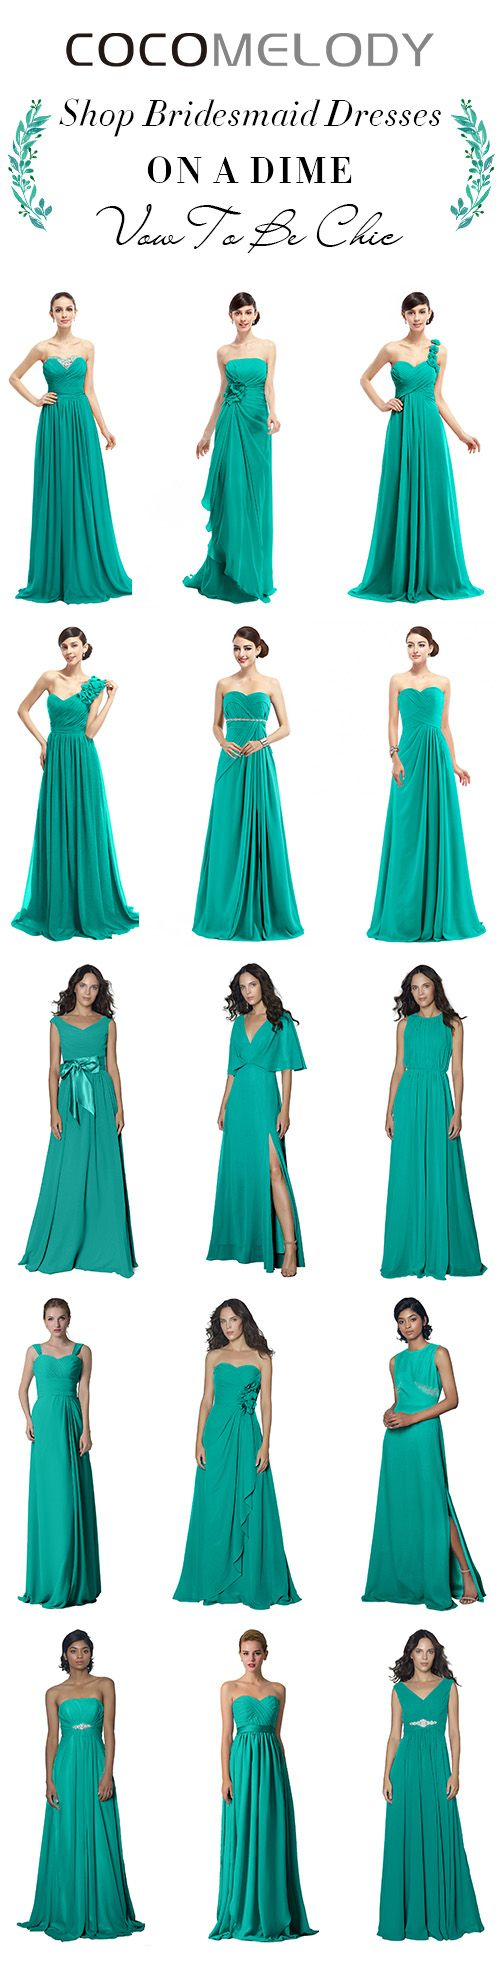 Flattering Your Maids On A Budget. All Sizes And More Styles To Choose.  #wedding #bridesmaids #bridesmaiddresses #cocomelody #customdresses #greendresses